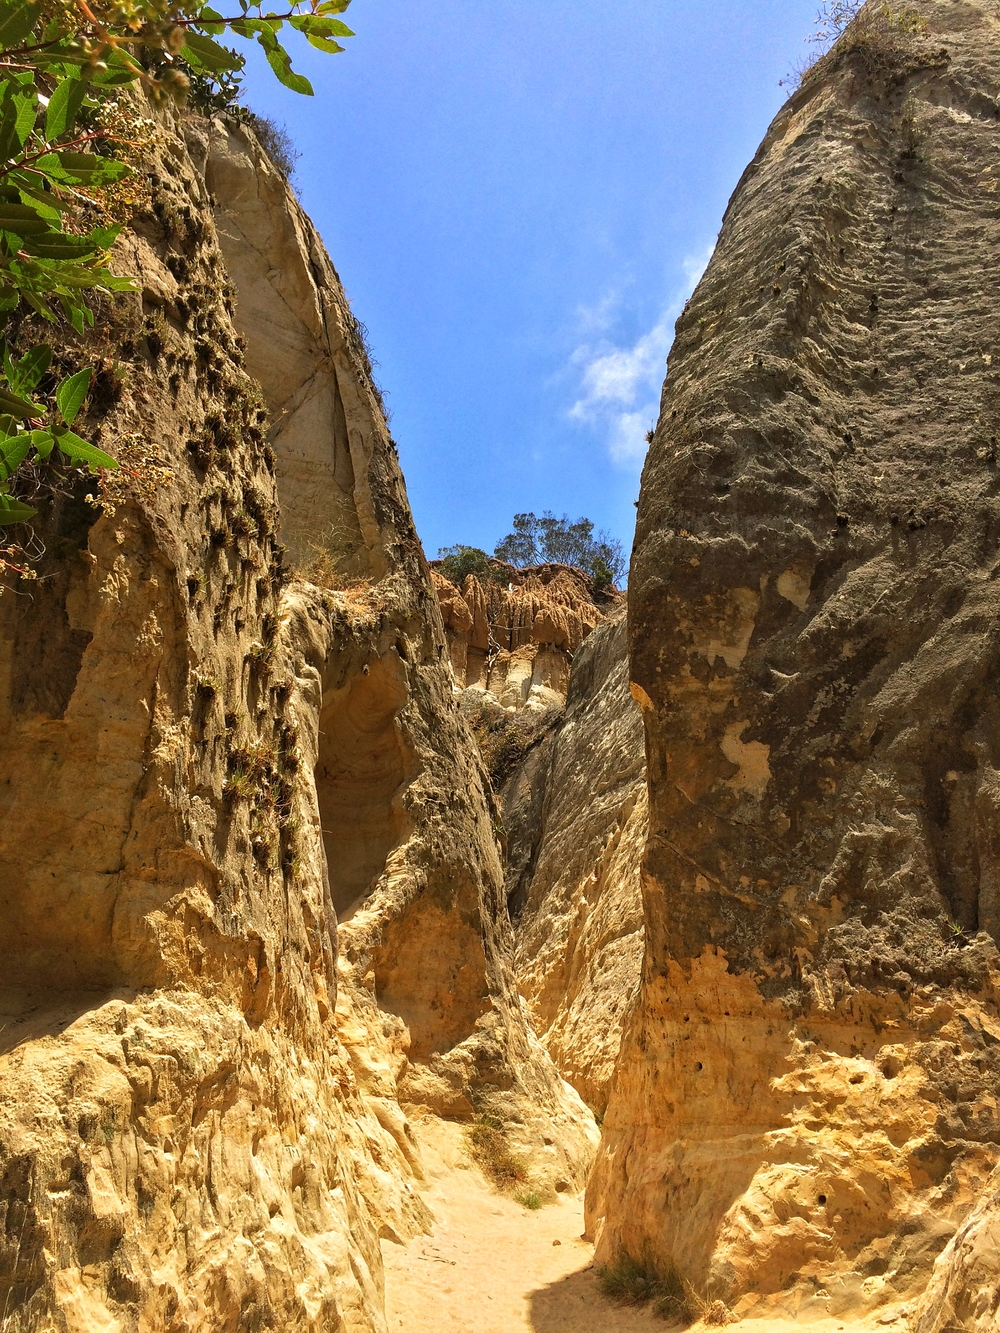 The restored canyon of the Annie's Canyon Trail